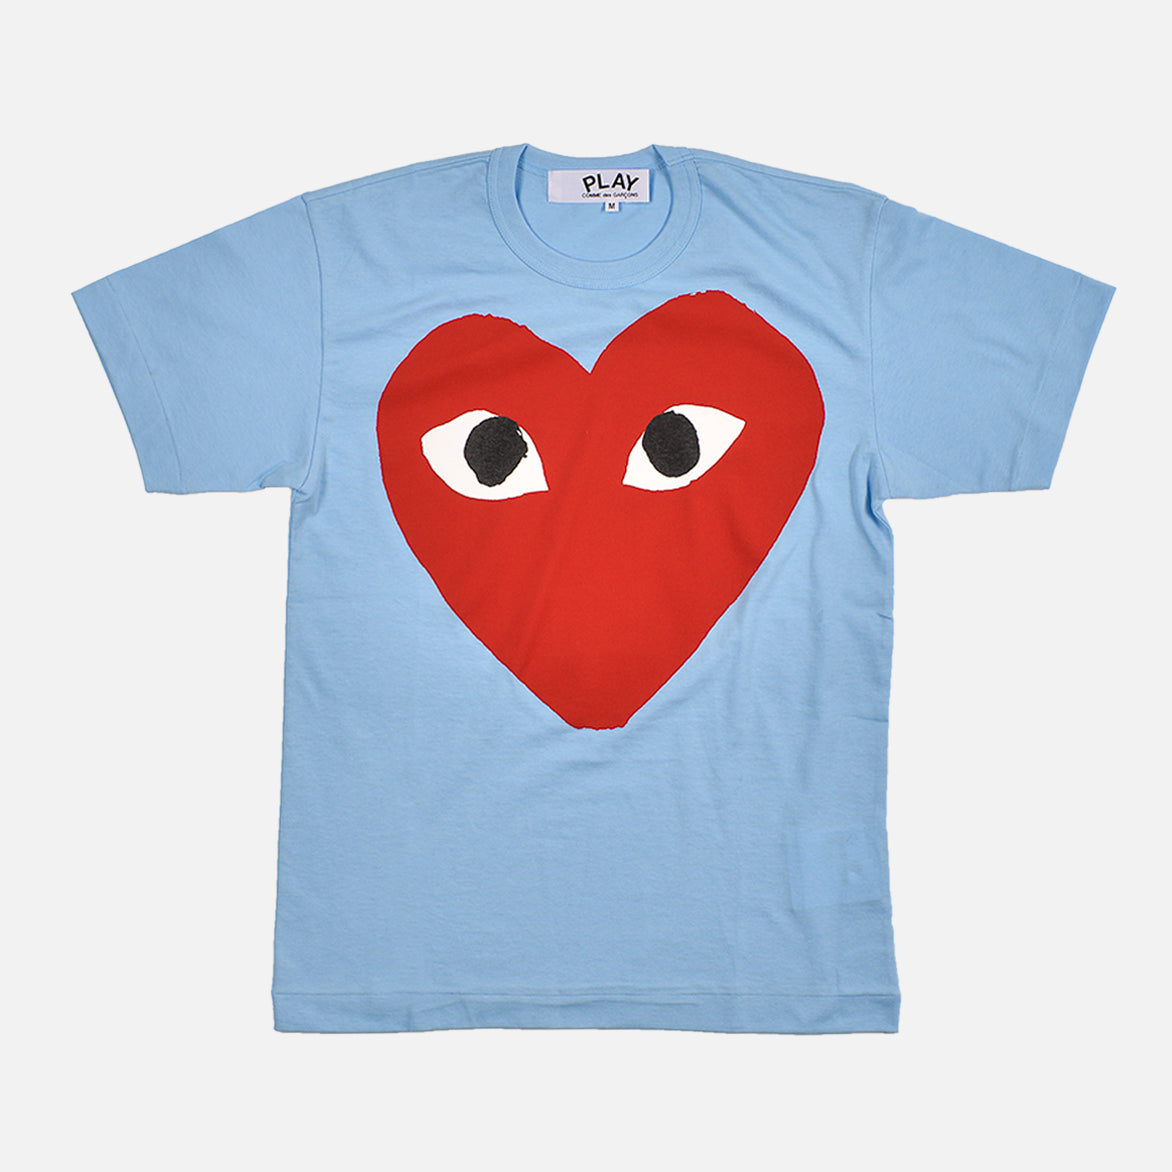 BIG HEART LOGO TEE - BLUE